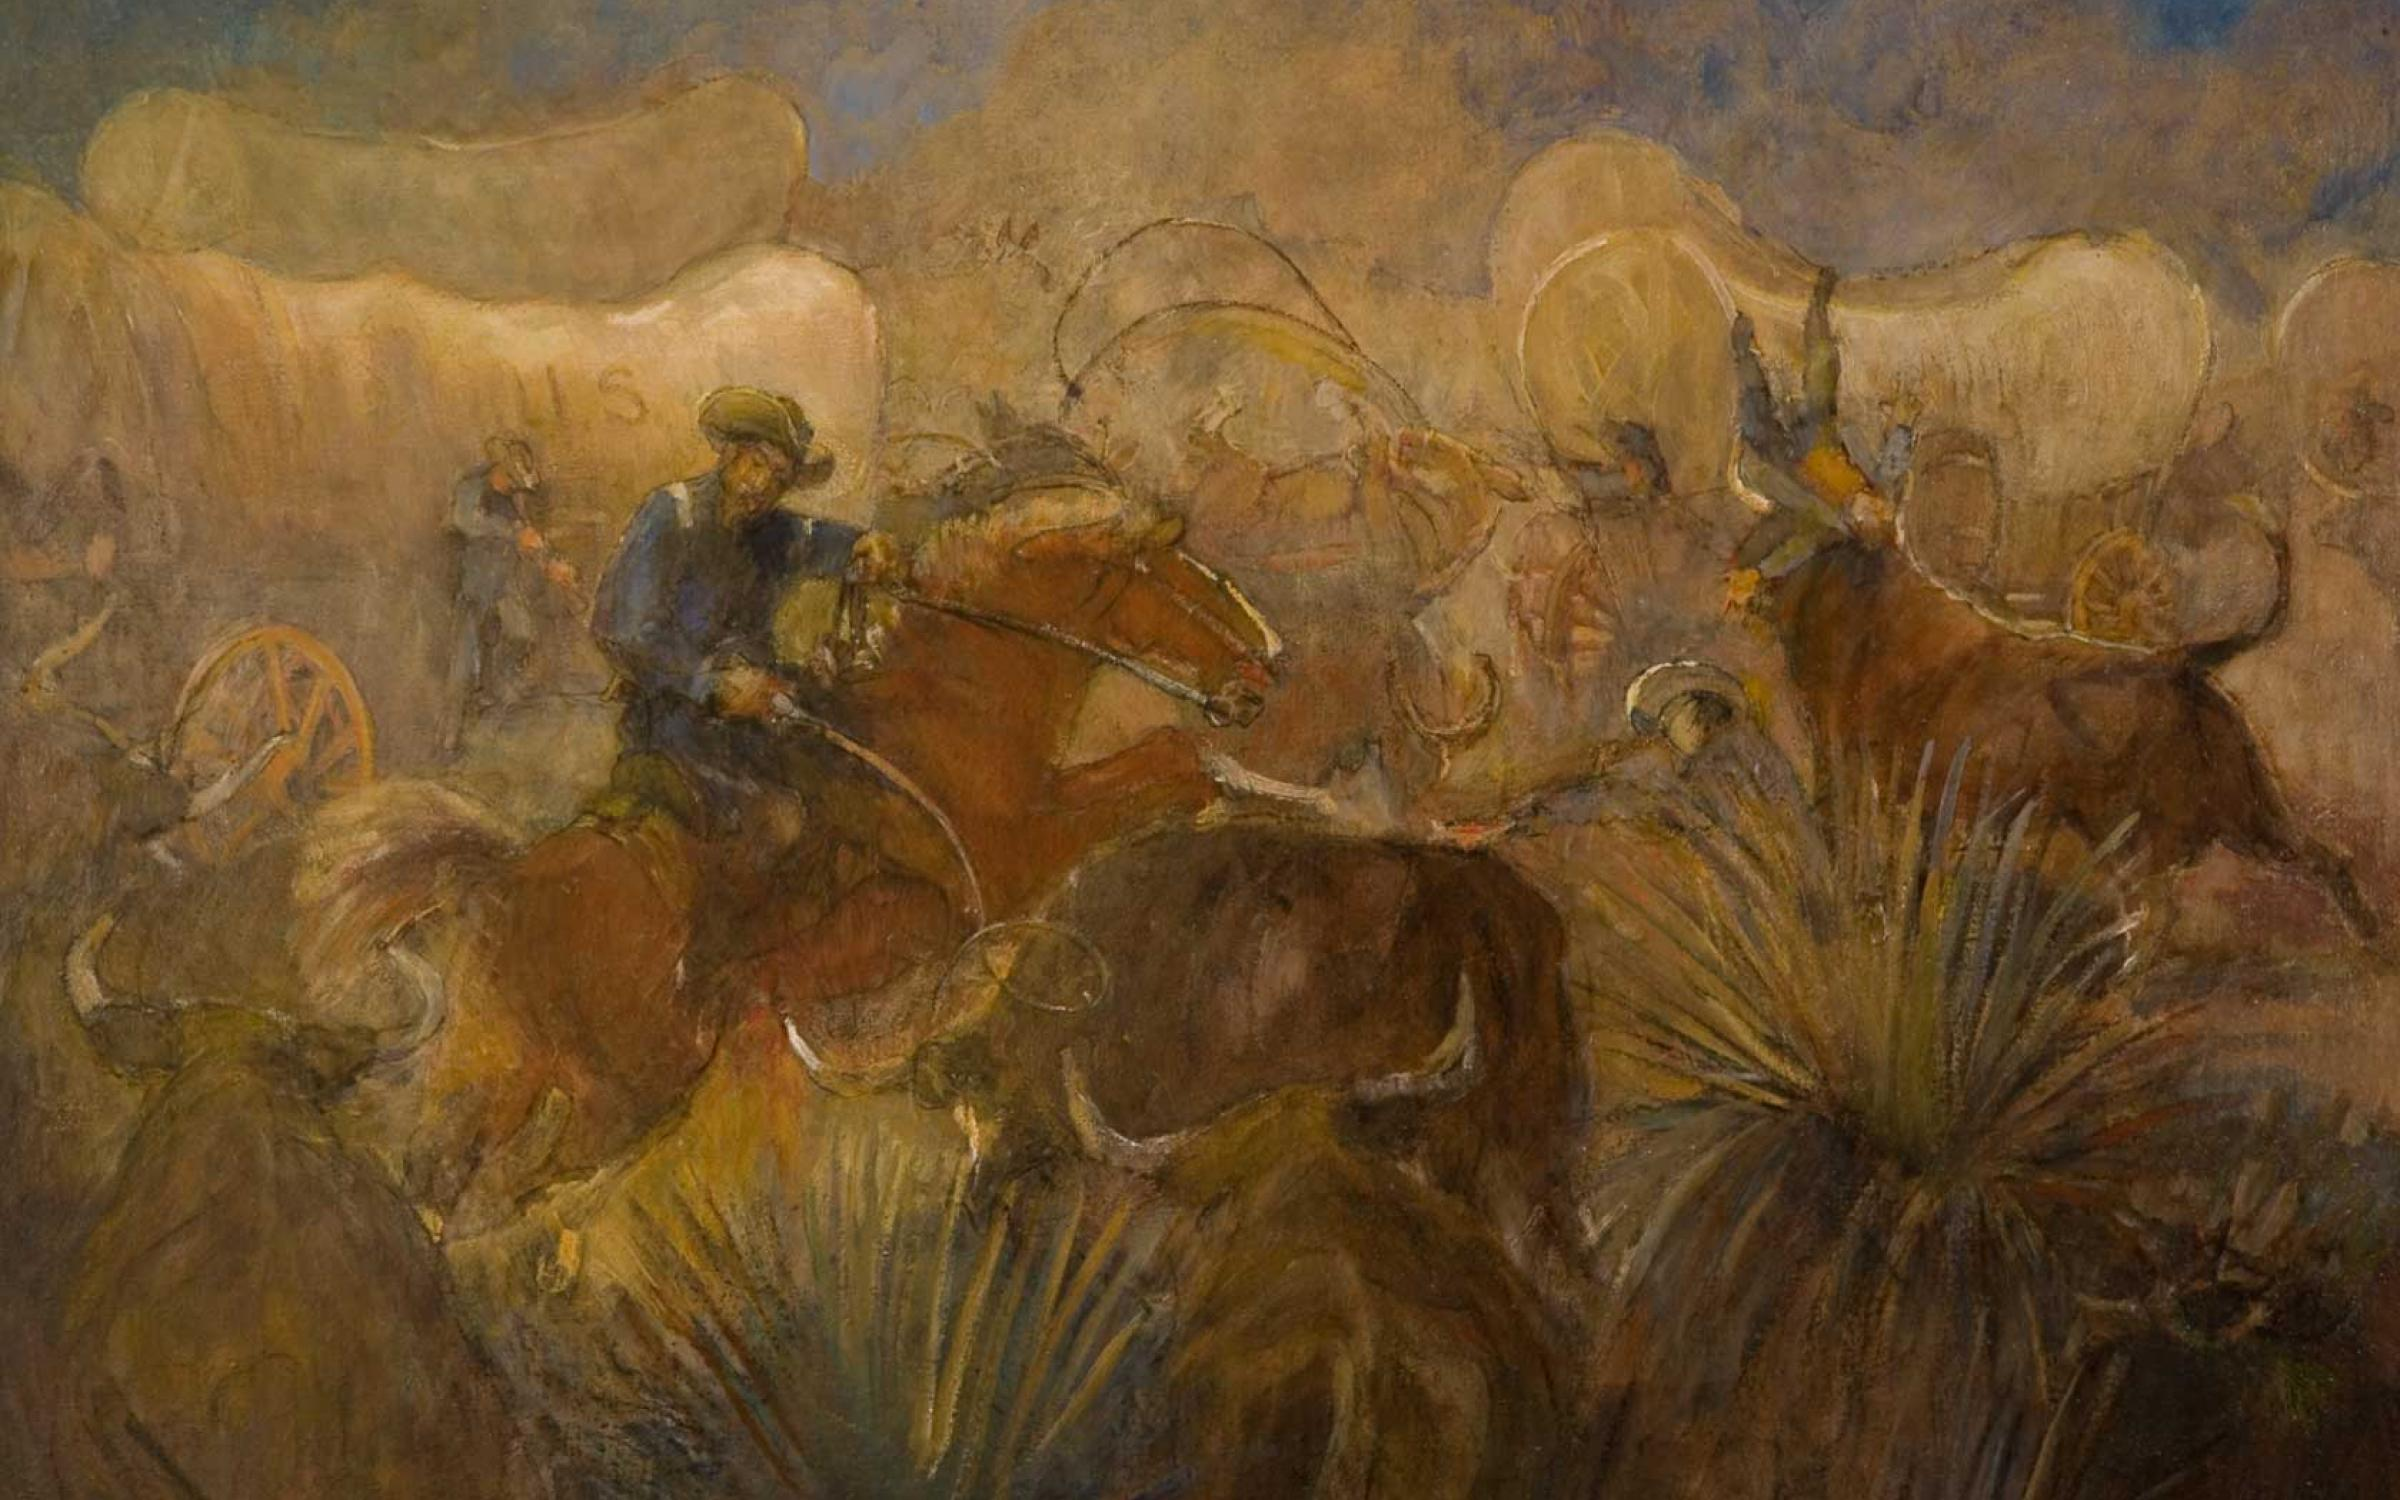 Minerva Teichert (American, 1888-1976), Battle of the Bulls, ca. 1946, oil on canvas, purchased with funds from Jack and Mary Lois Wheatley and a gift from Bernard Simbari, M.D., UMFA2004.2.1